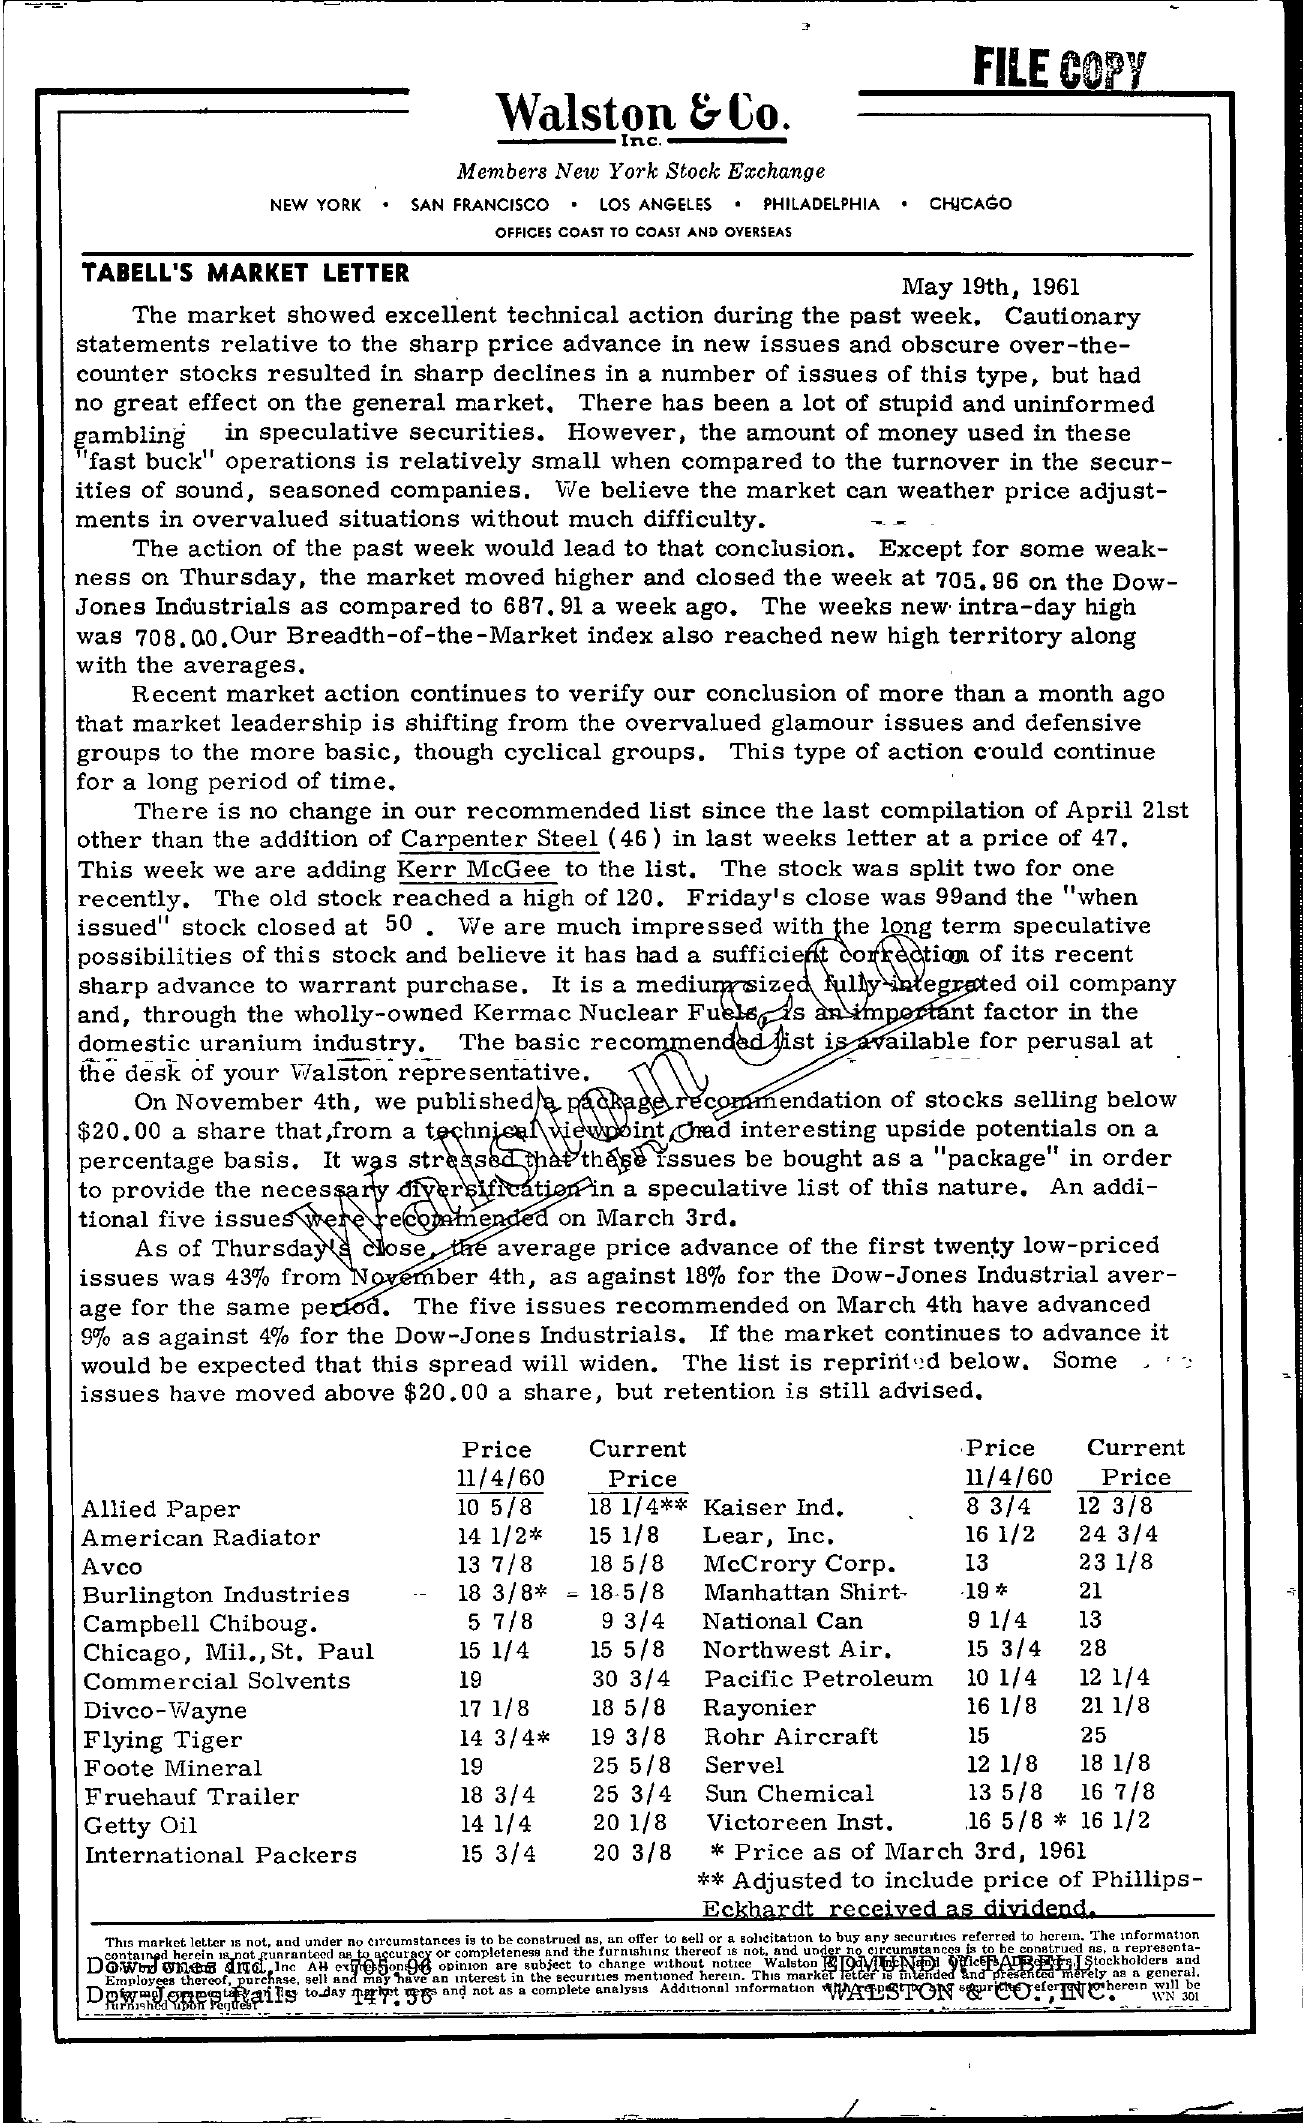 Tabell's Market Letter - May 19, 1961